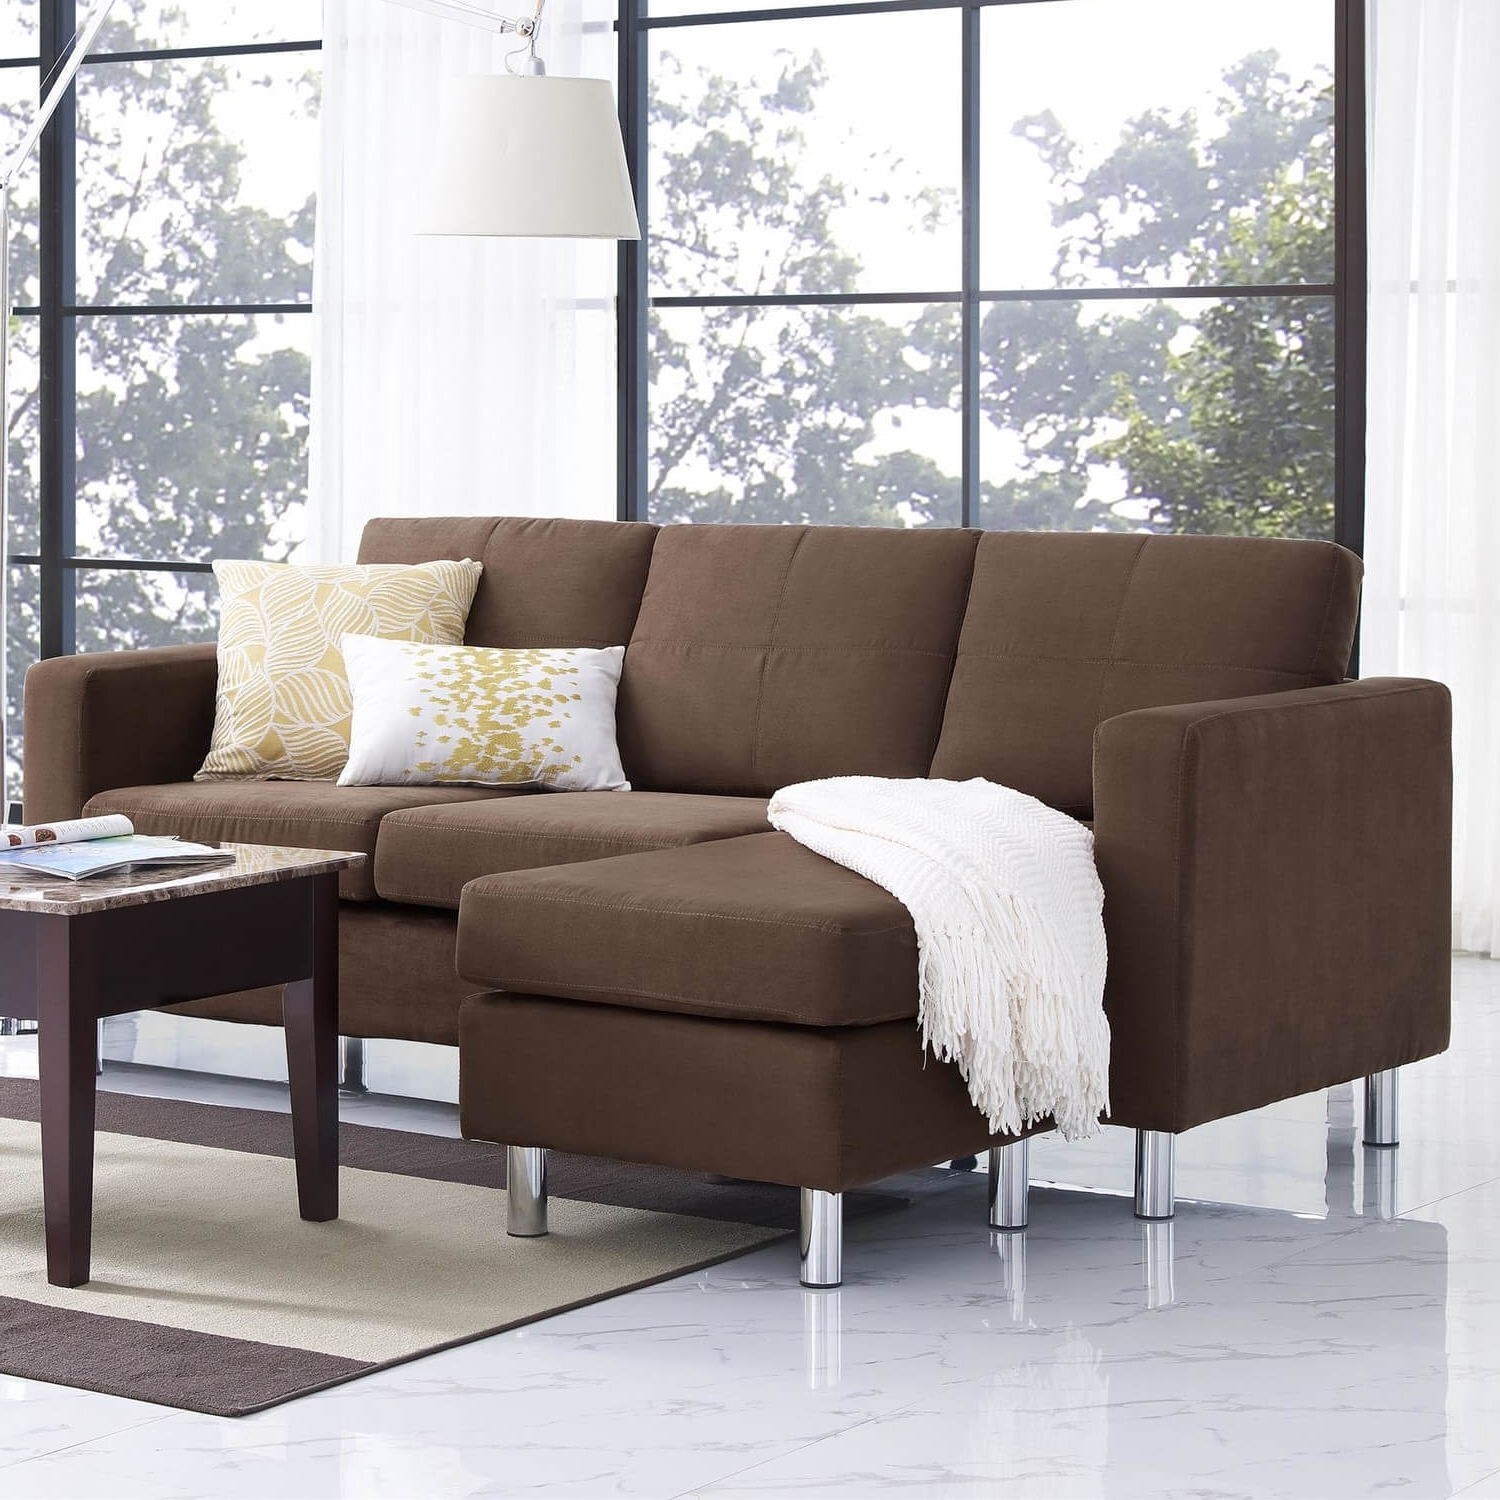 Ethan Allen Charlotte Nc Modern Italian Leather Sofa Ethan Allen For Latest Sectional Sofas At Charlotte Nc (View 7 of 20)